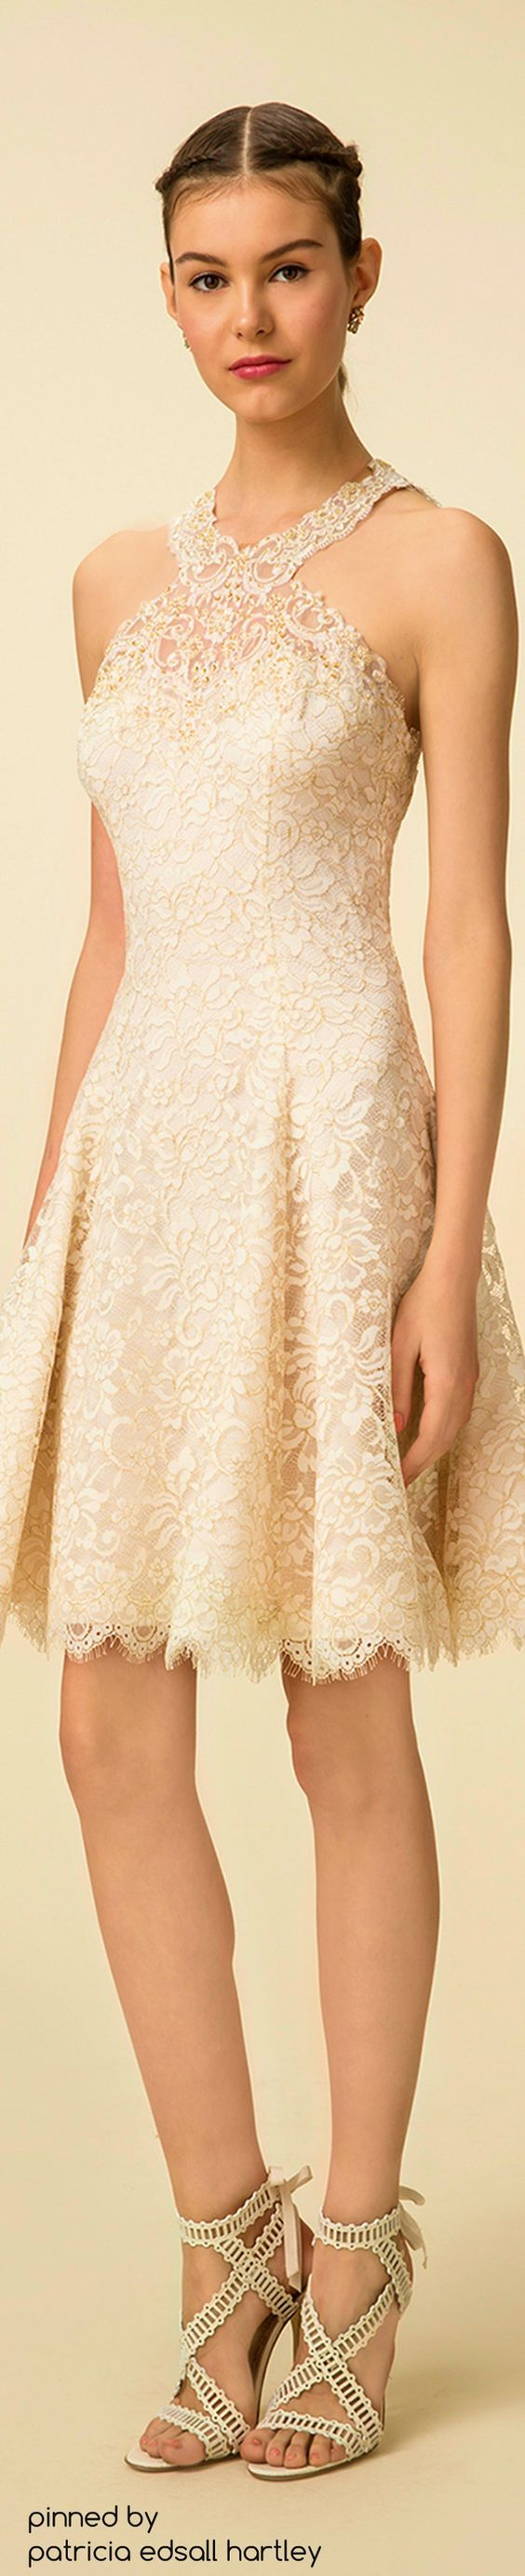 SPRING 2016 READY-TO-WEAR Marchesa Notte: